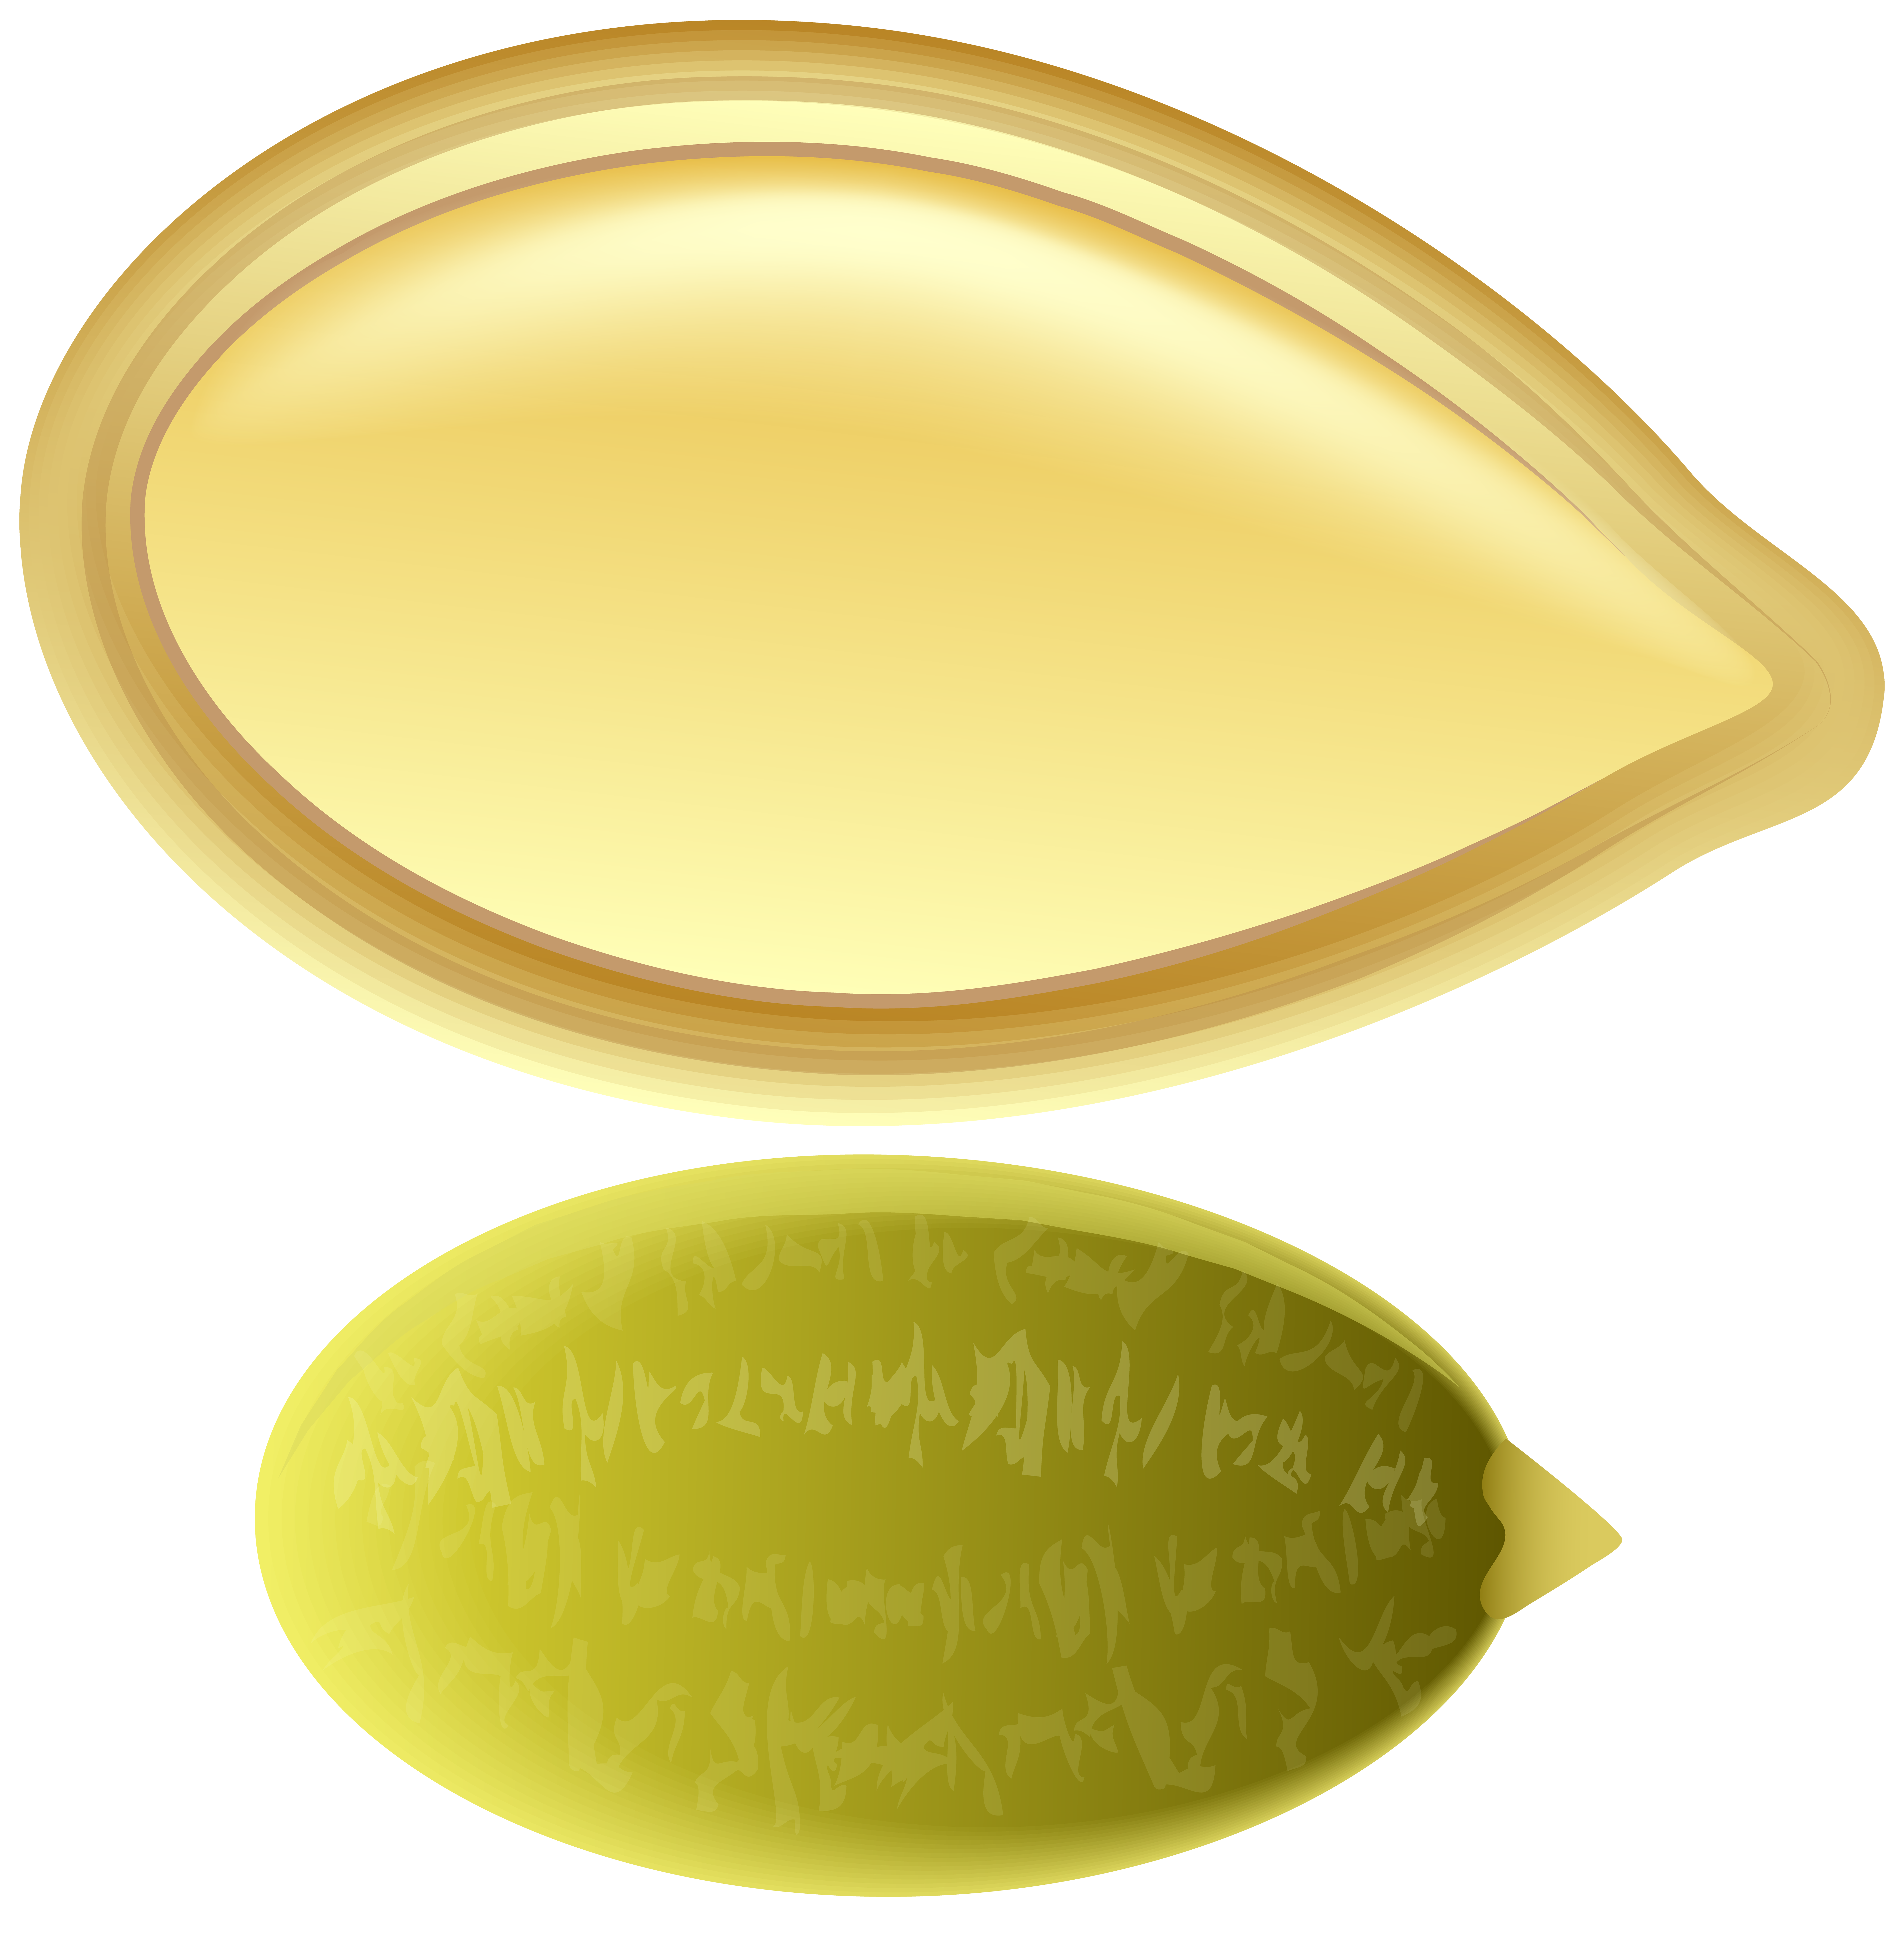 Free pumpkin seed clipart svg download Pumpkin Seed PNG Clip Art | Gallery Yopriceville - High-Quality ... svg download